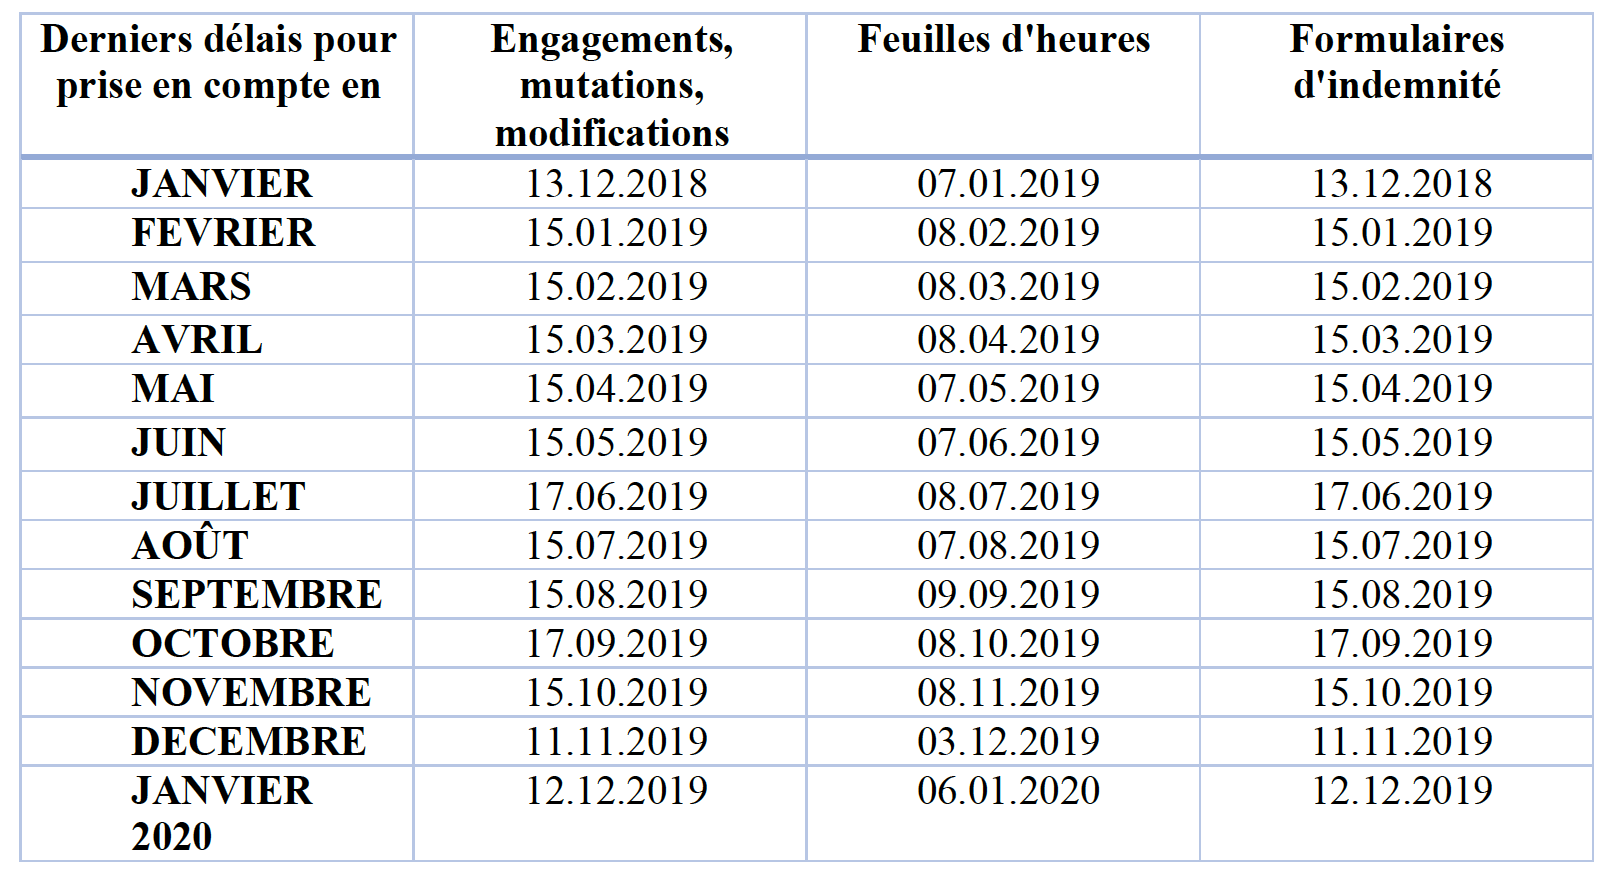 Salaire Prof Calendrier.Donnees Salariales Unil Ressources Humaines